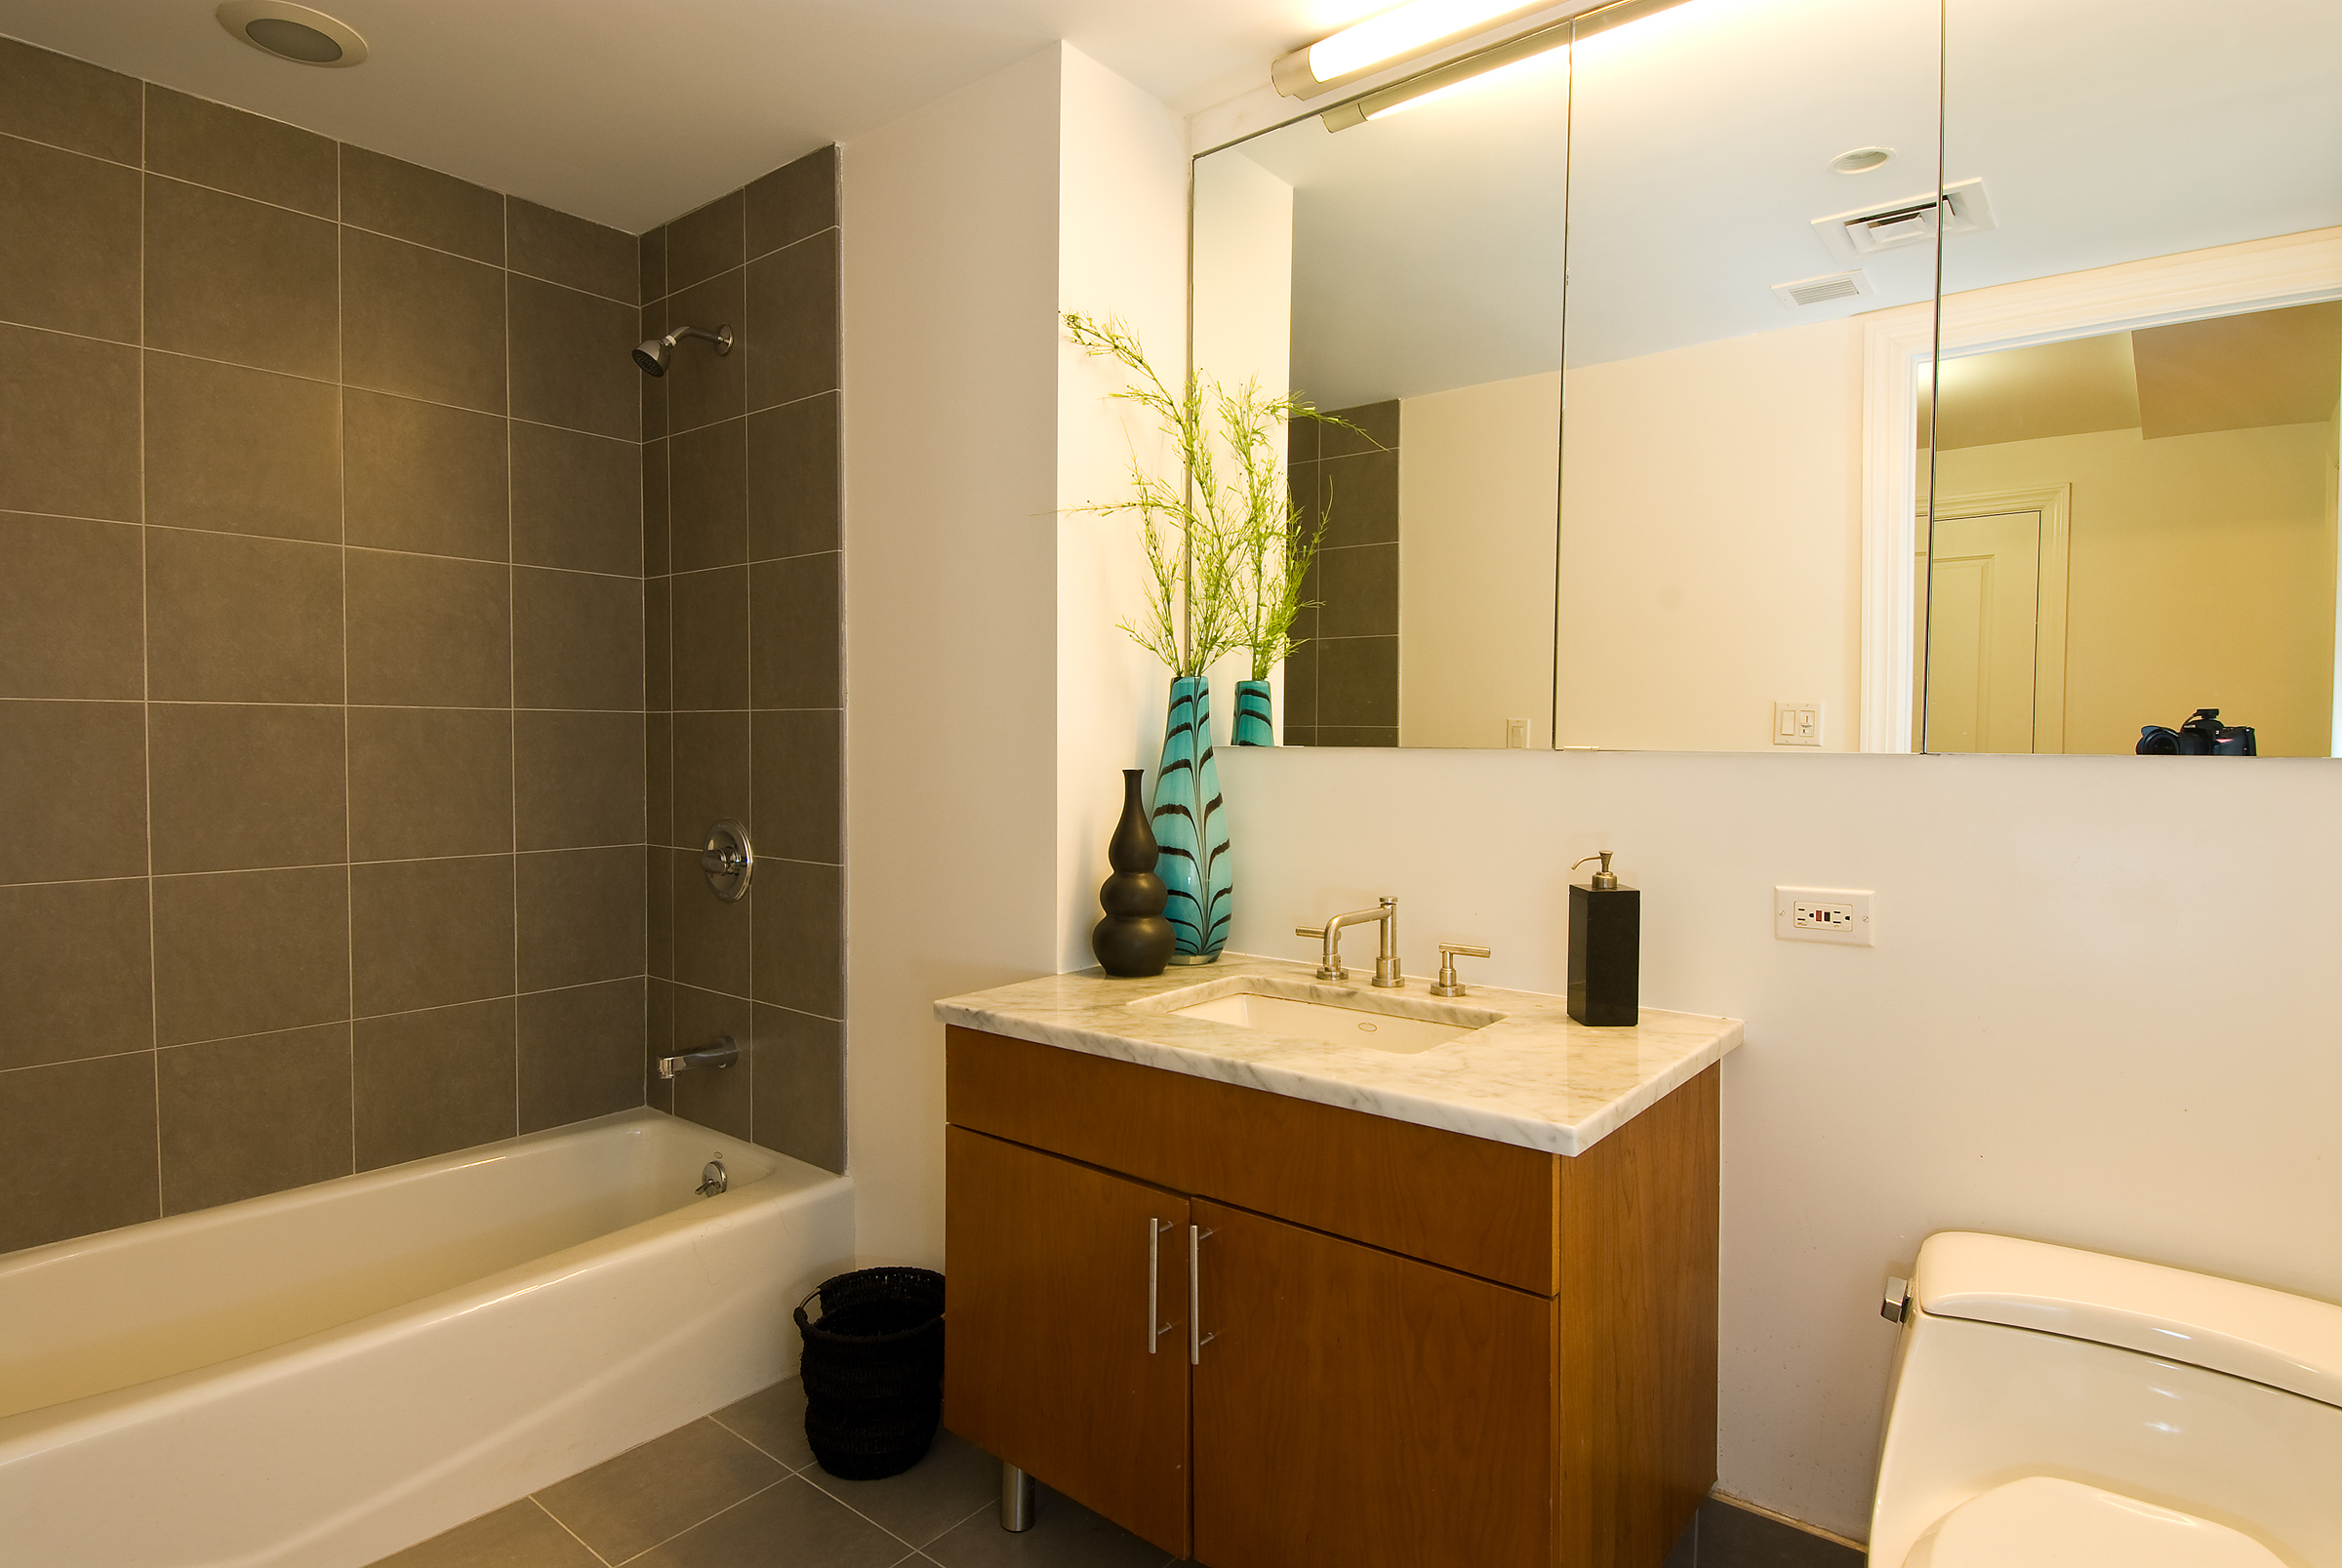 How Much Is It To Remodel A Small Bathroom Bathroom Remodle Service  Homesfeed